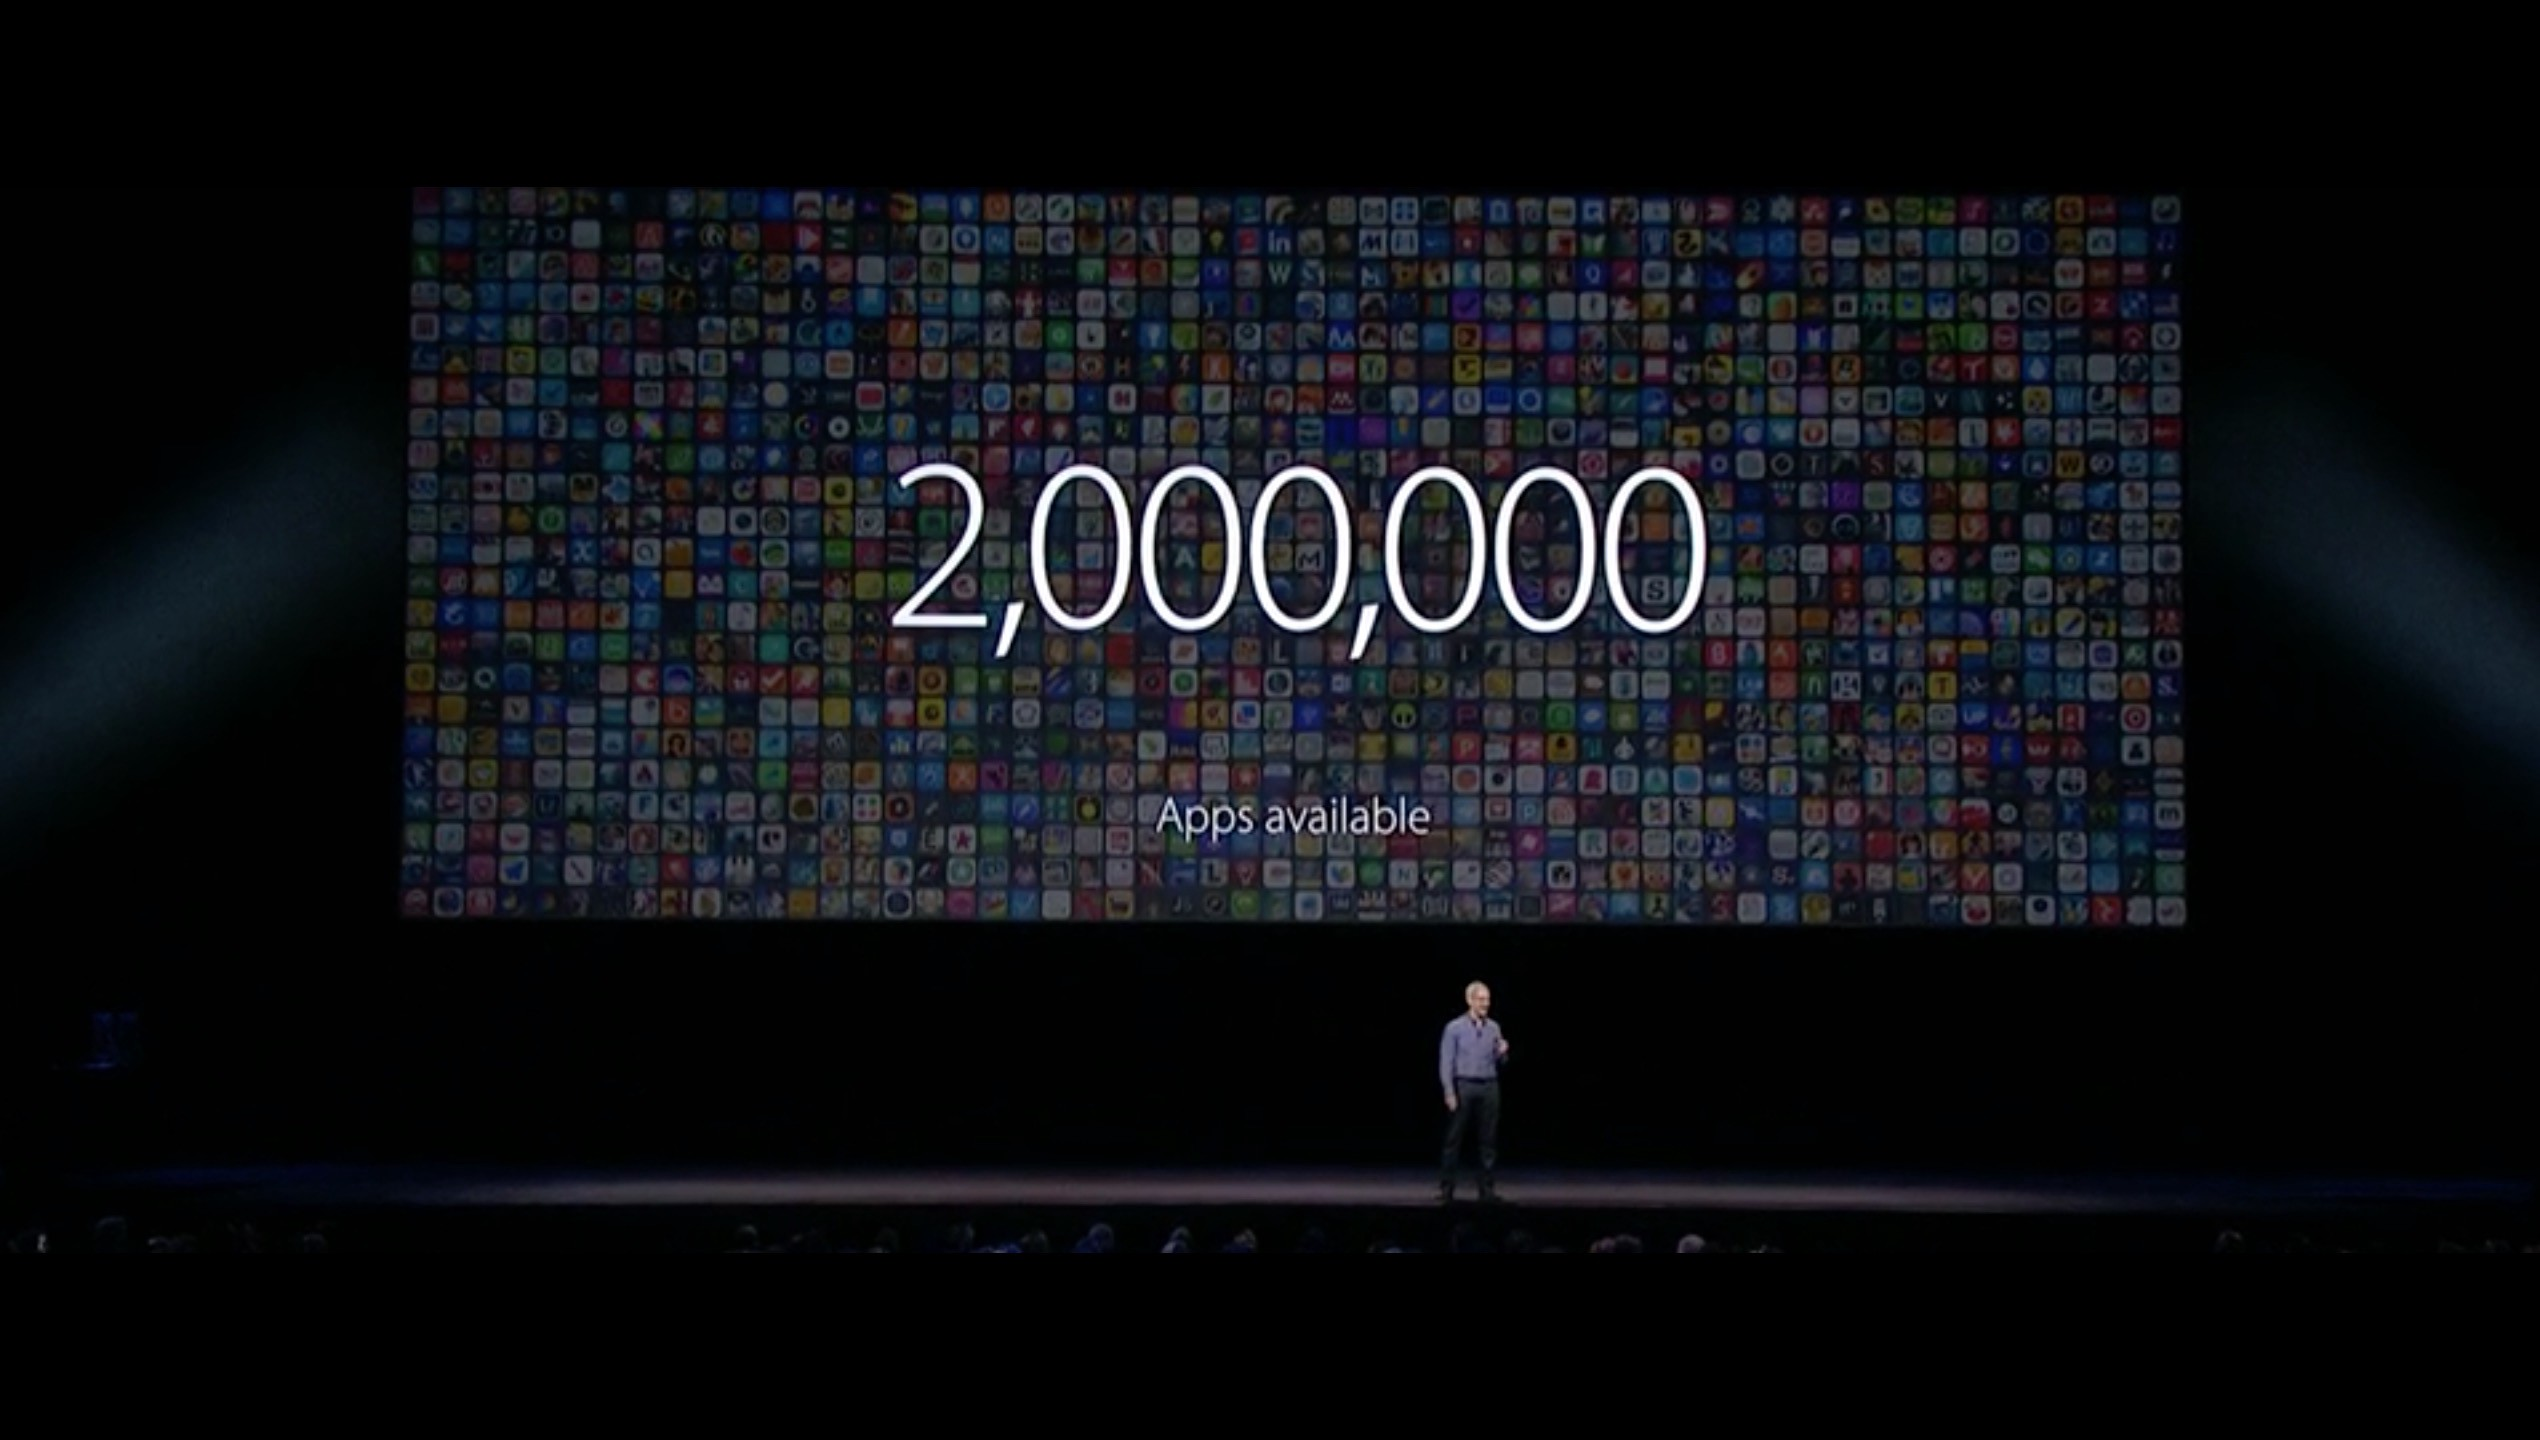 Tim Cook announcing that the App Store has 2 million apps on WWDC 2016. Watch the full keynote here.